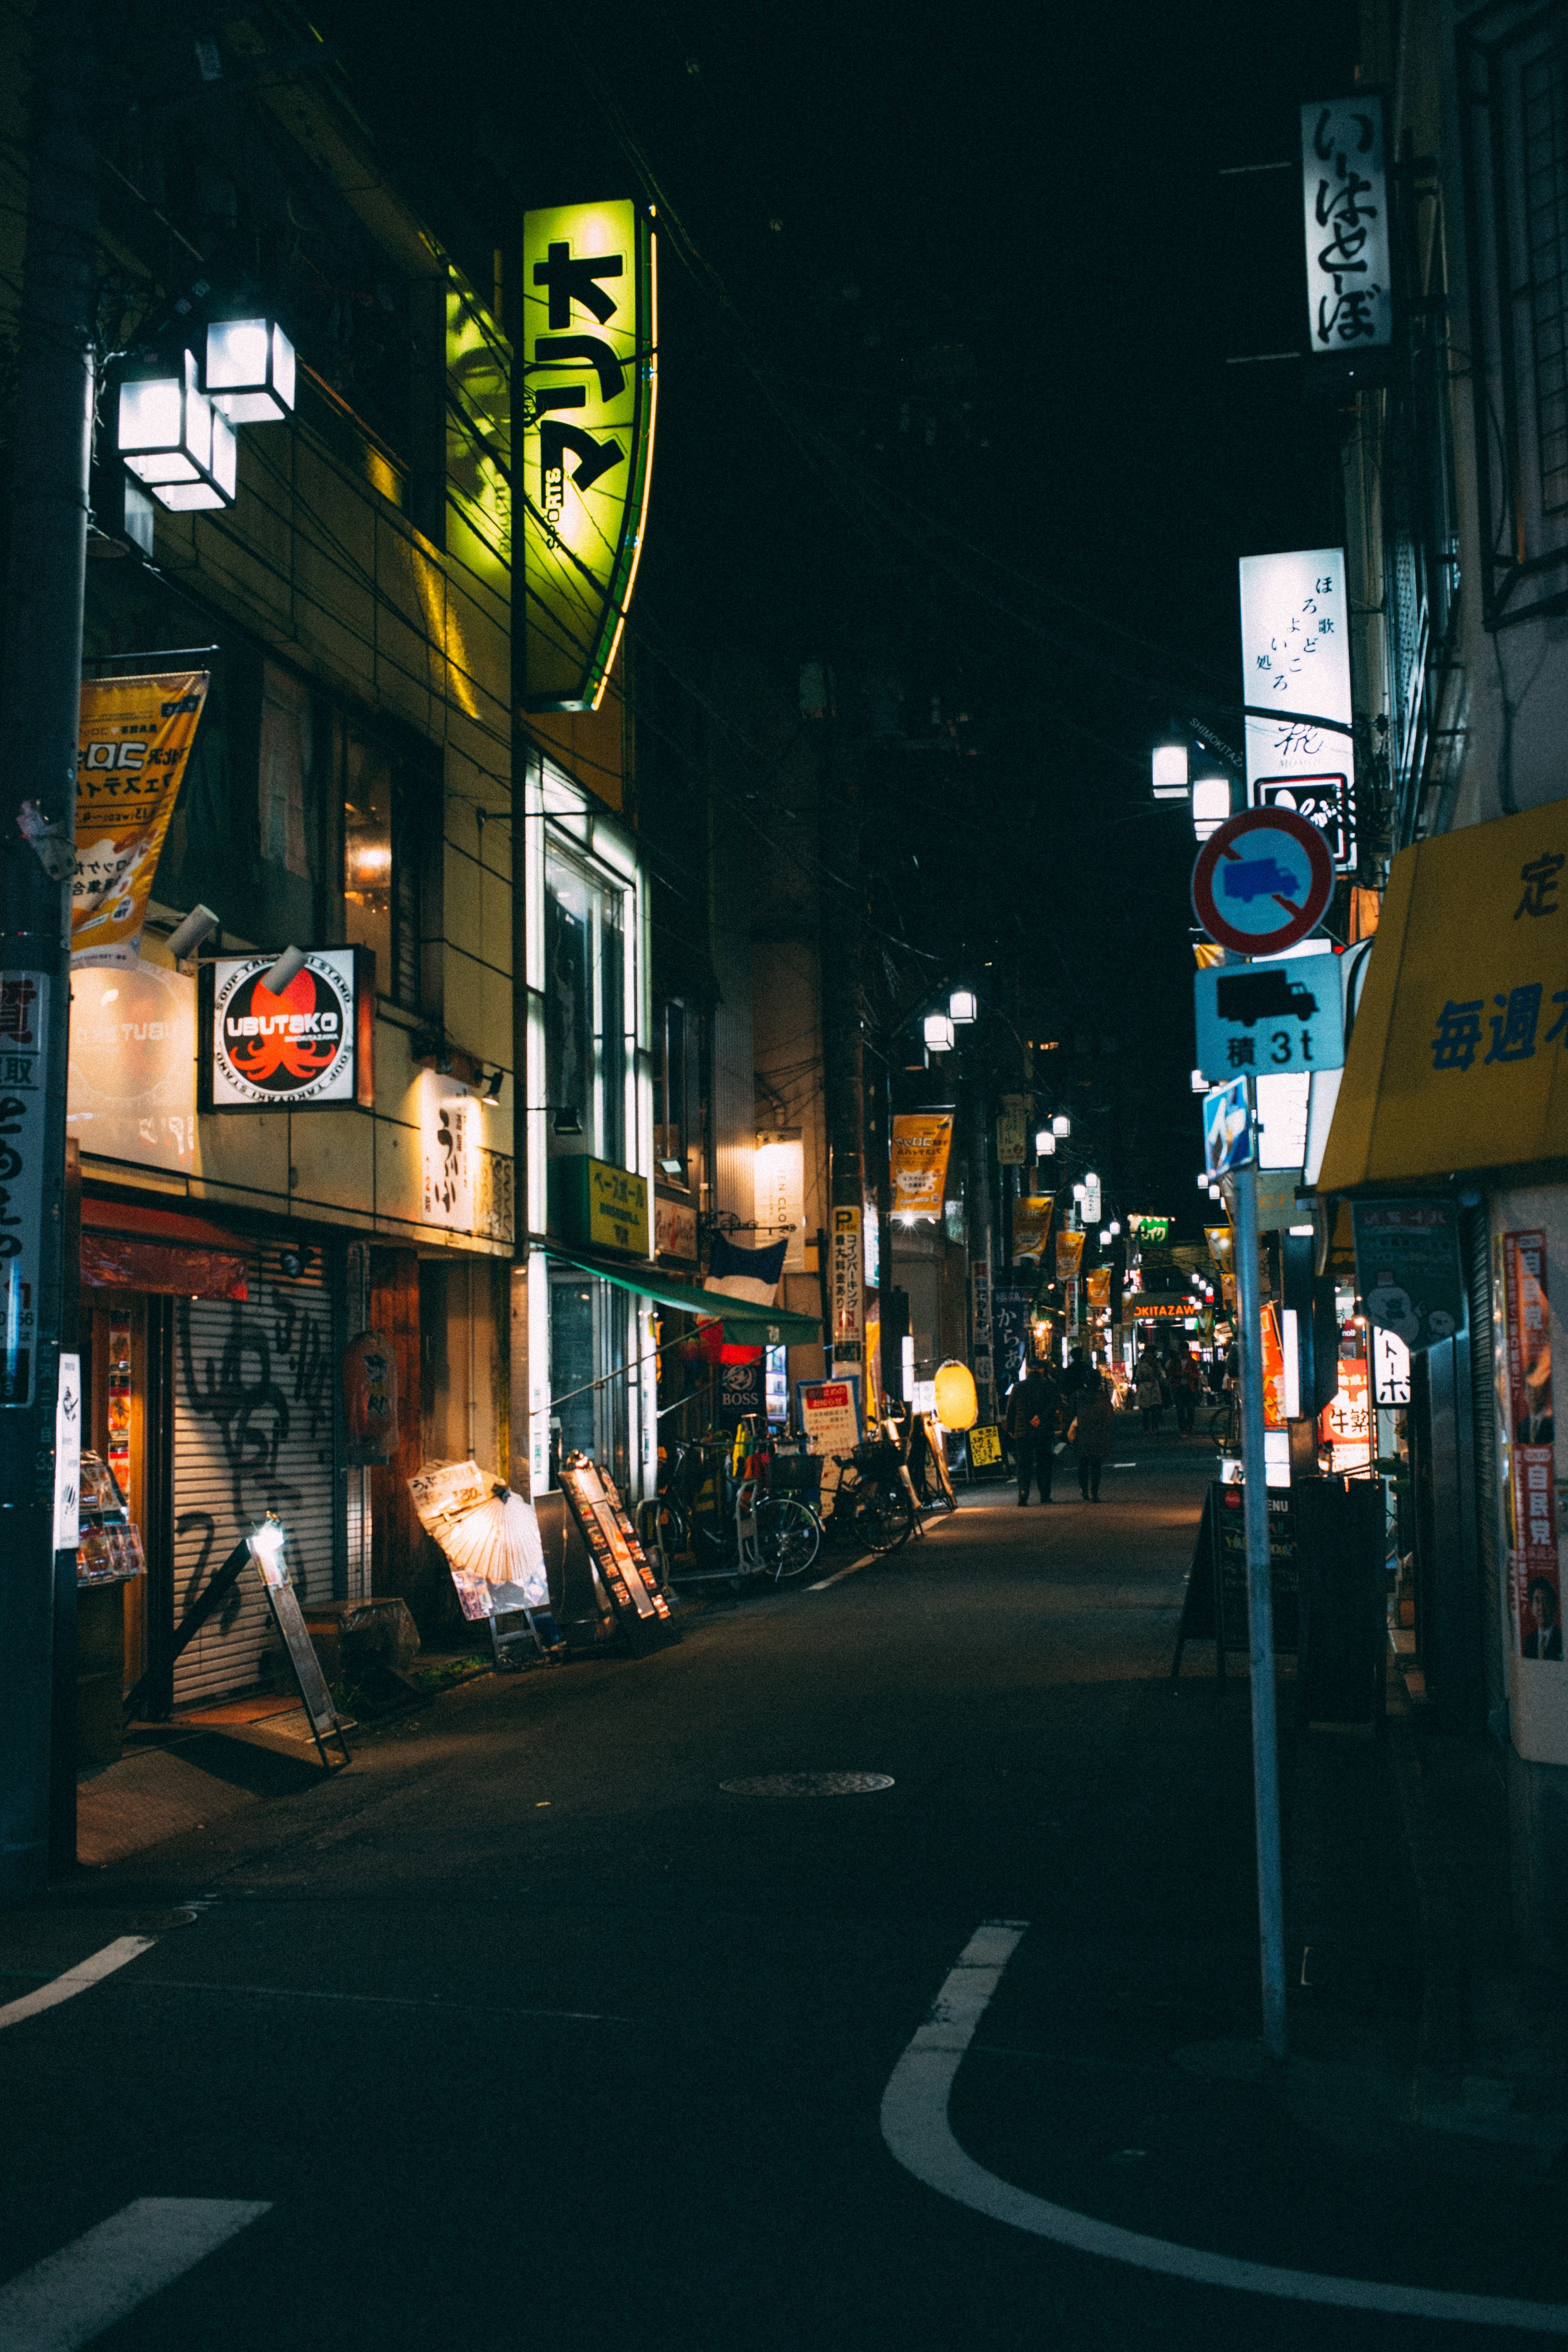 Tokyo Street Night Wallpaper Posted By Michelle Peltier